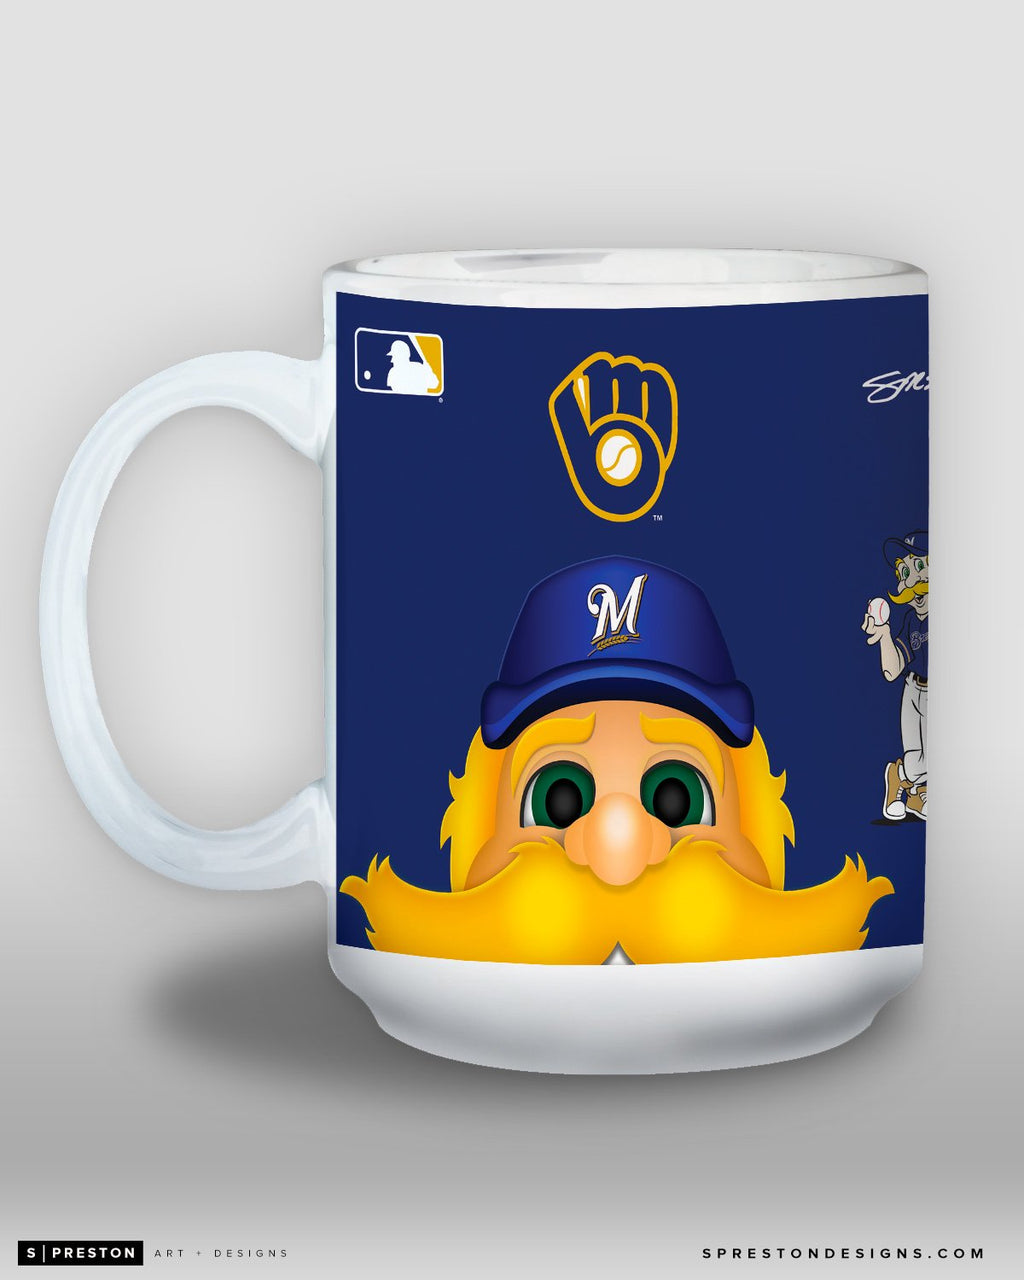 Minimalist Bernie Brewer Coffee Mug - MLB Licensed - Milwaukee Brewers Mascot